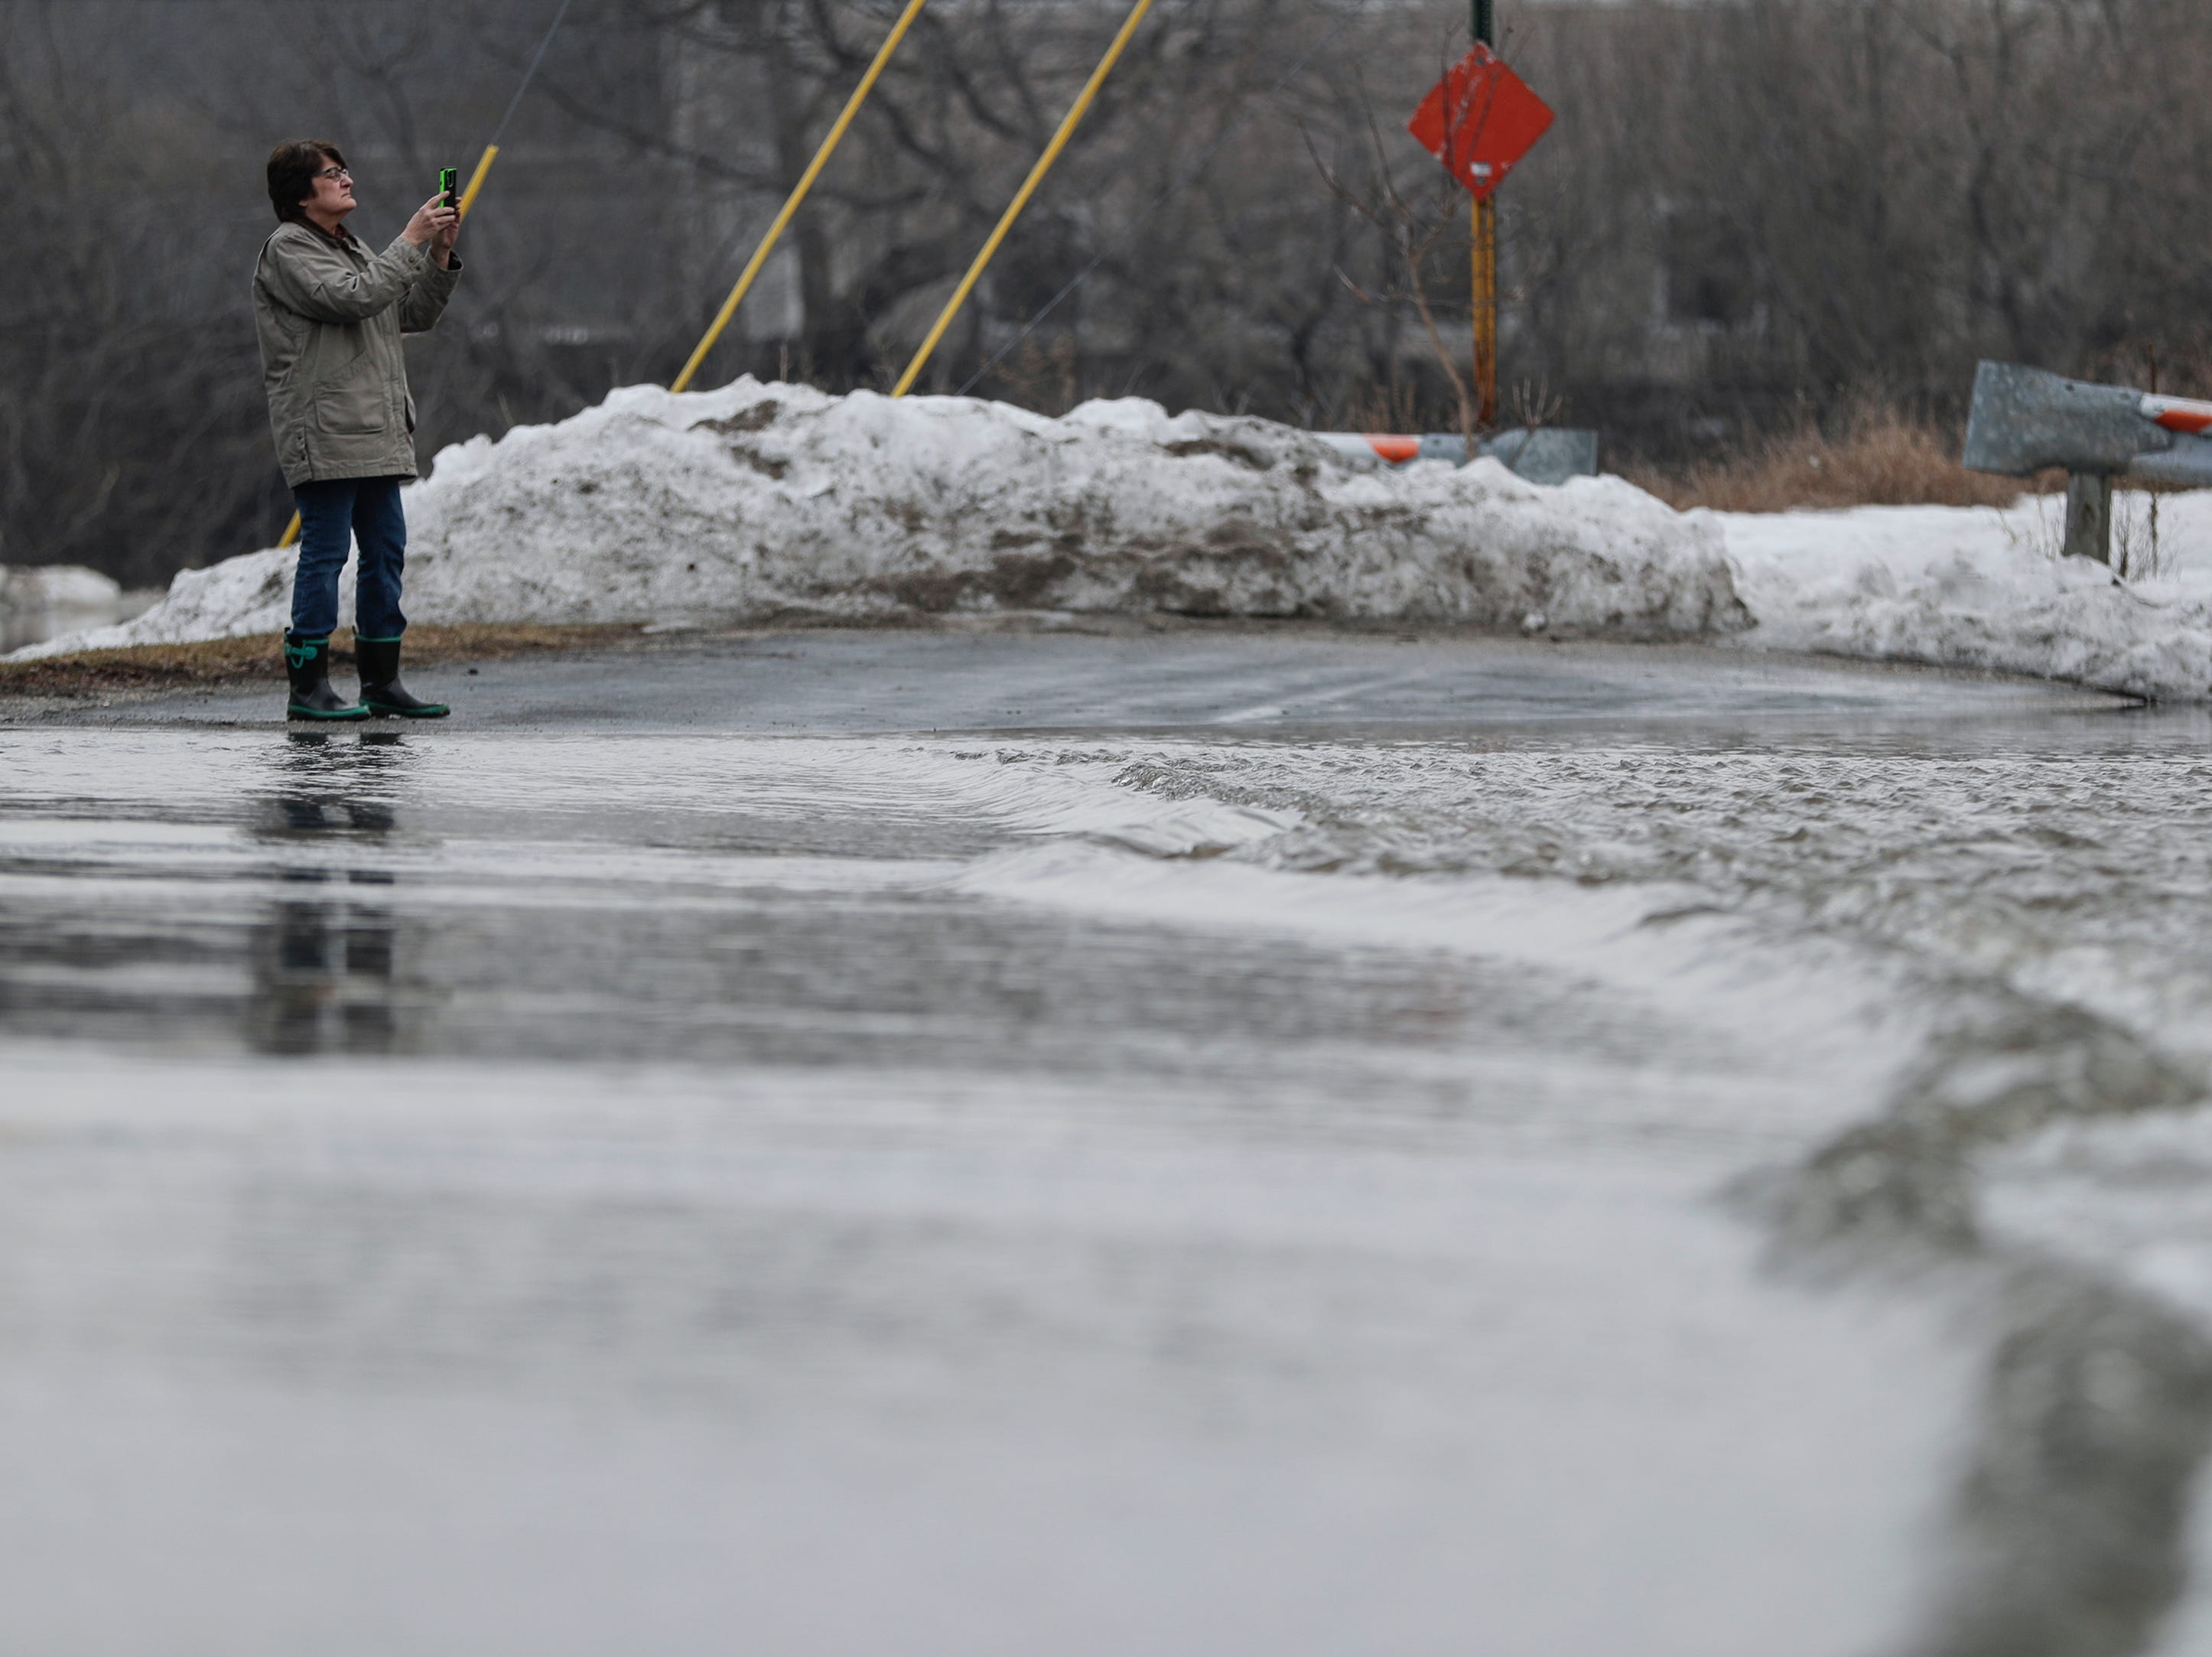 A woman takes a picture of the rising water after an ice jam on the Manitowoc River causes flooding on Mill Road Wednesday, March 20, 2019, in Manitowoc, Wis. Joshua Clark/USA TODAY NETWORK-Wisconsin